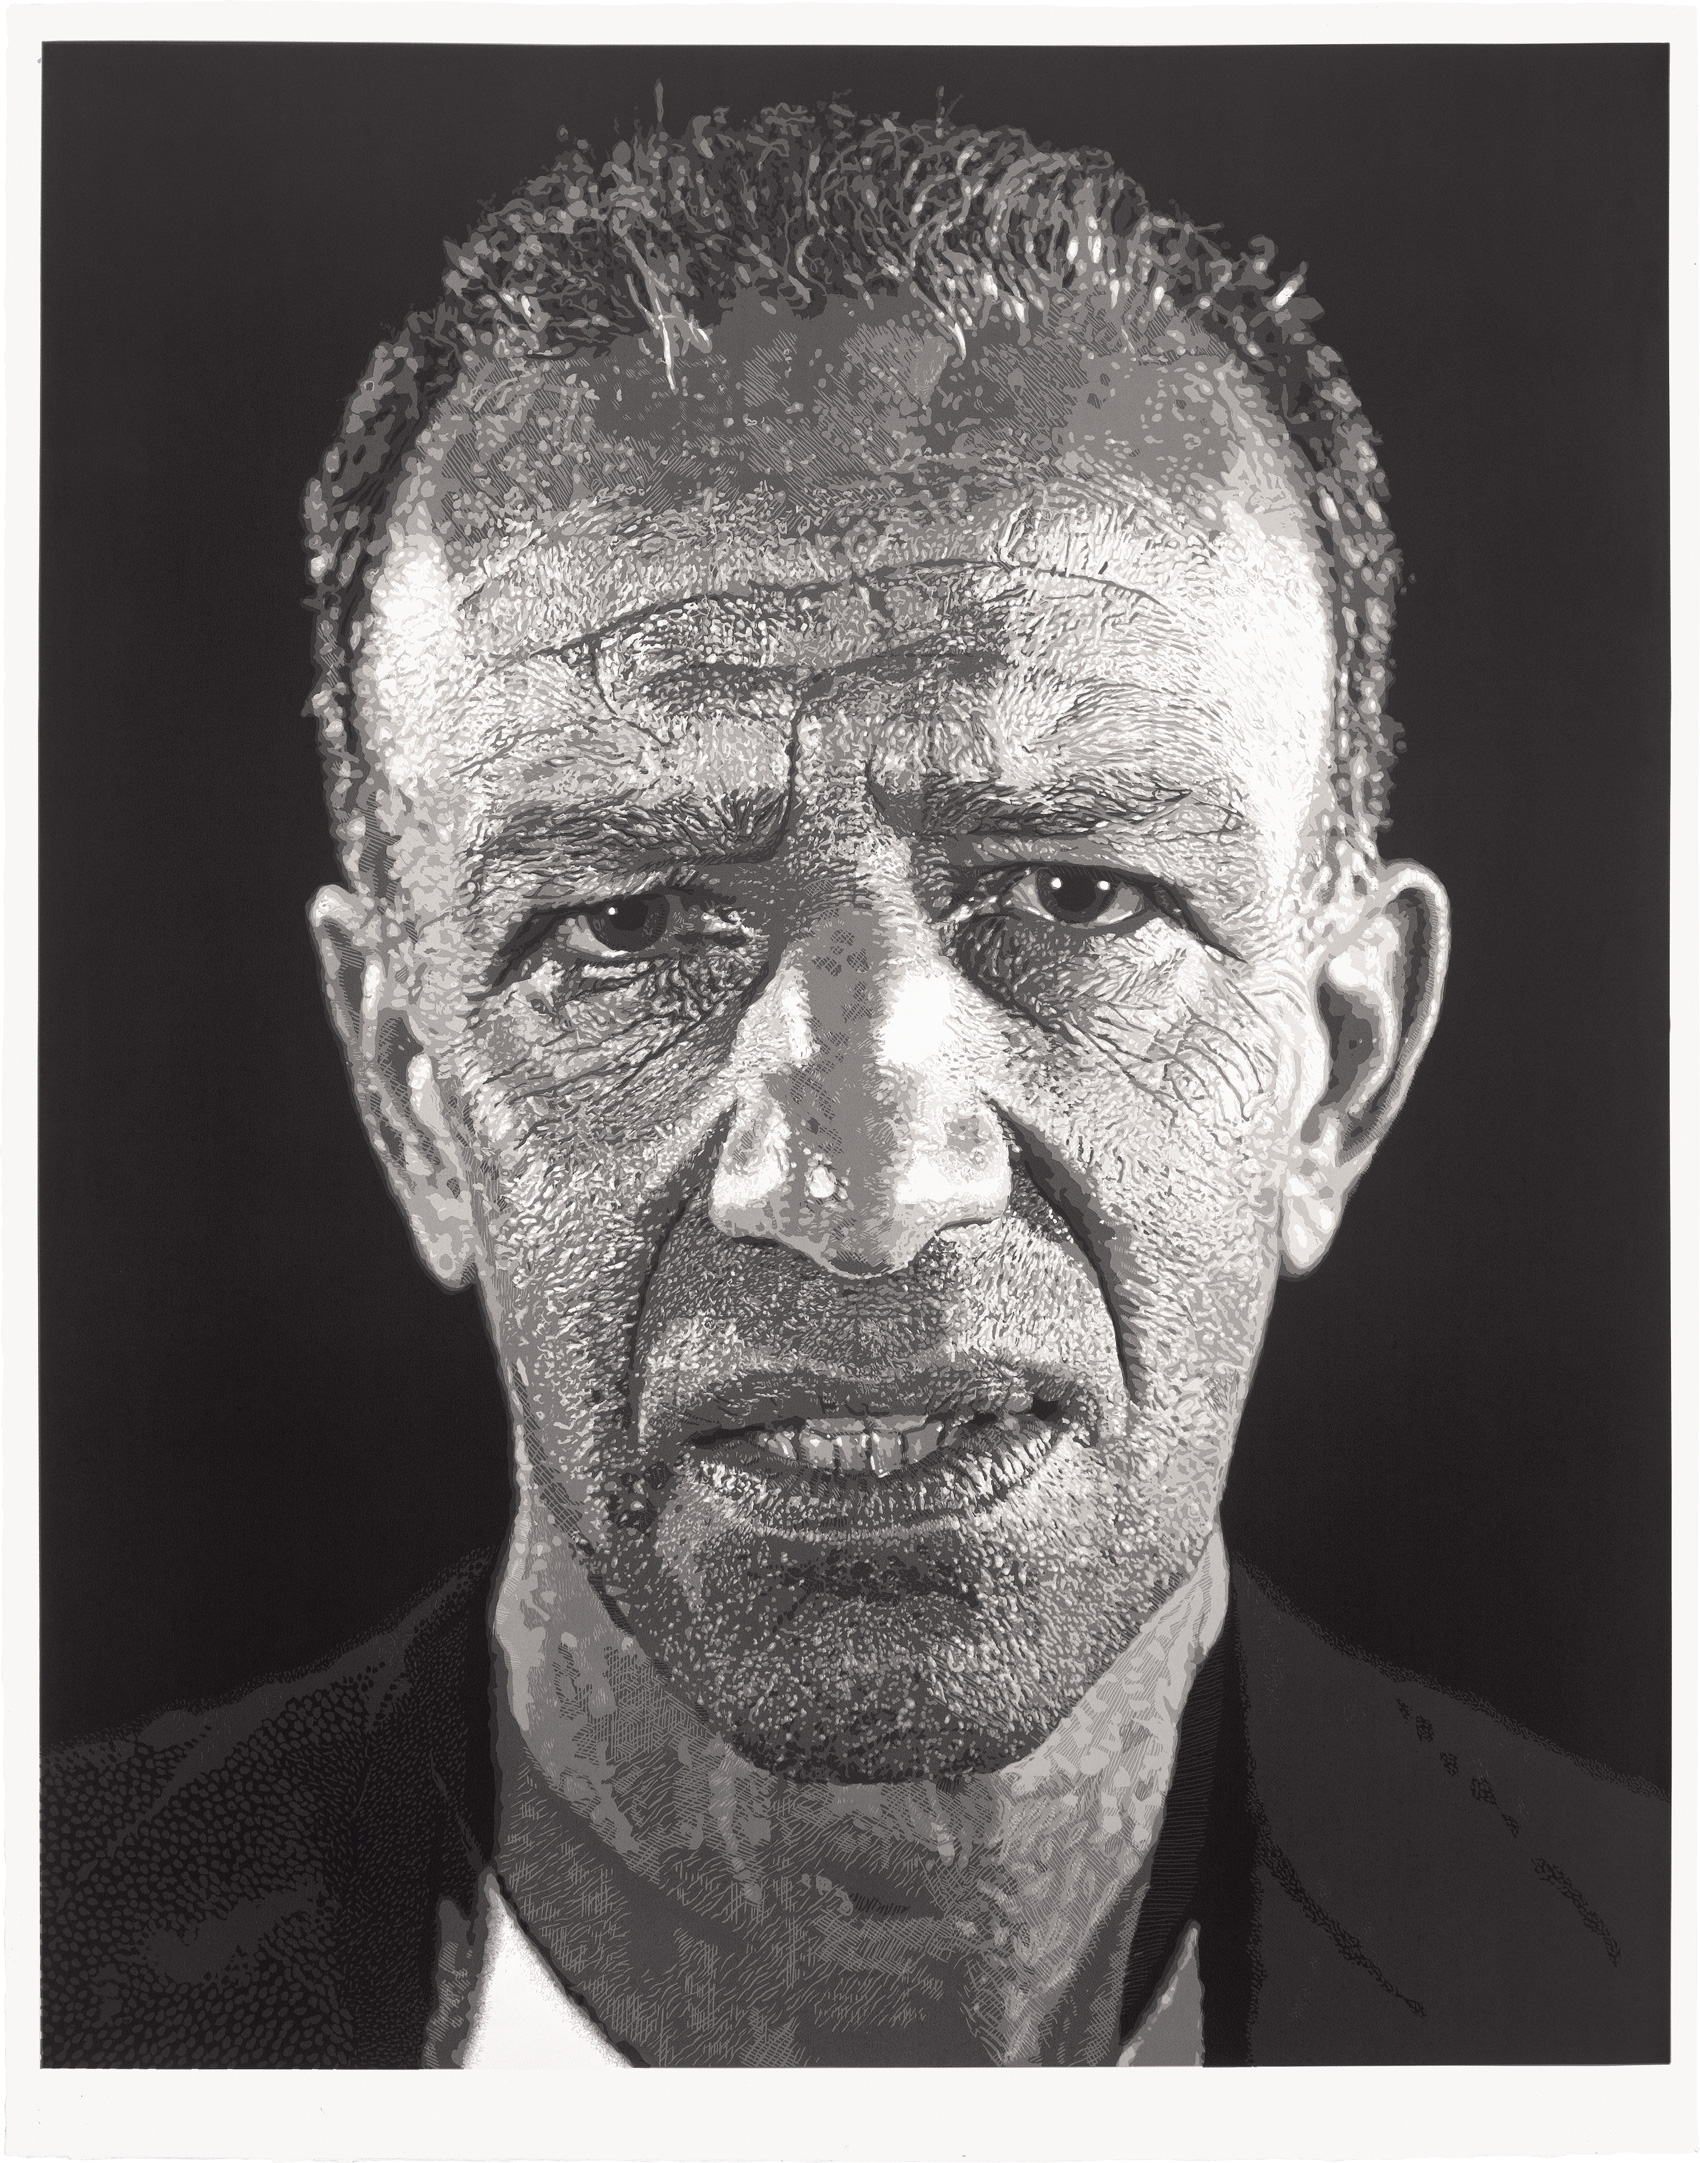 Alex/Reduction Print, 1993 (Photo by Bill Jacobson)